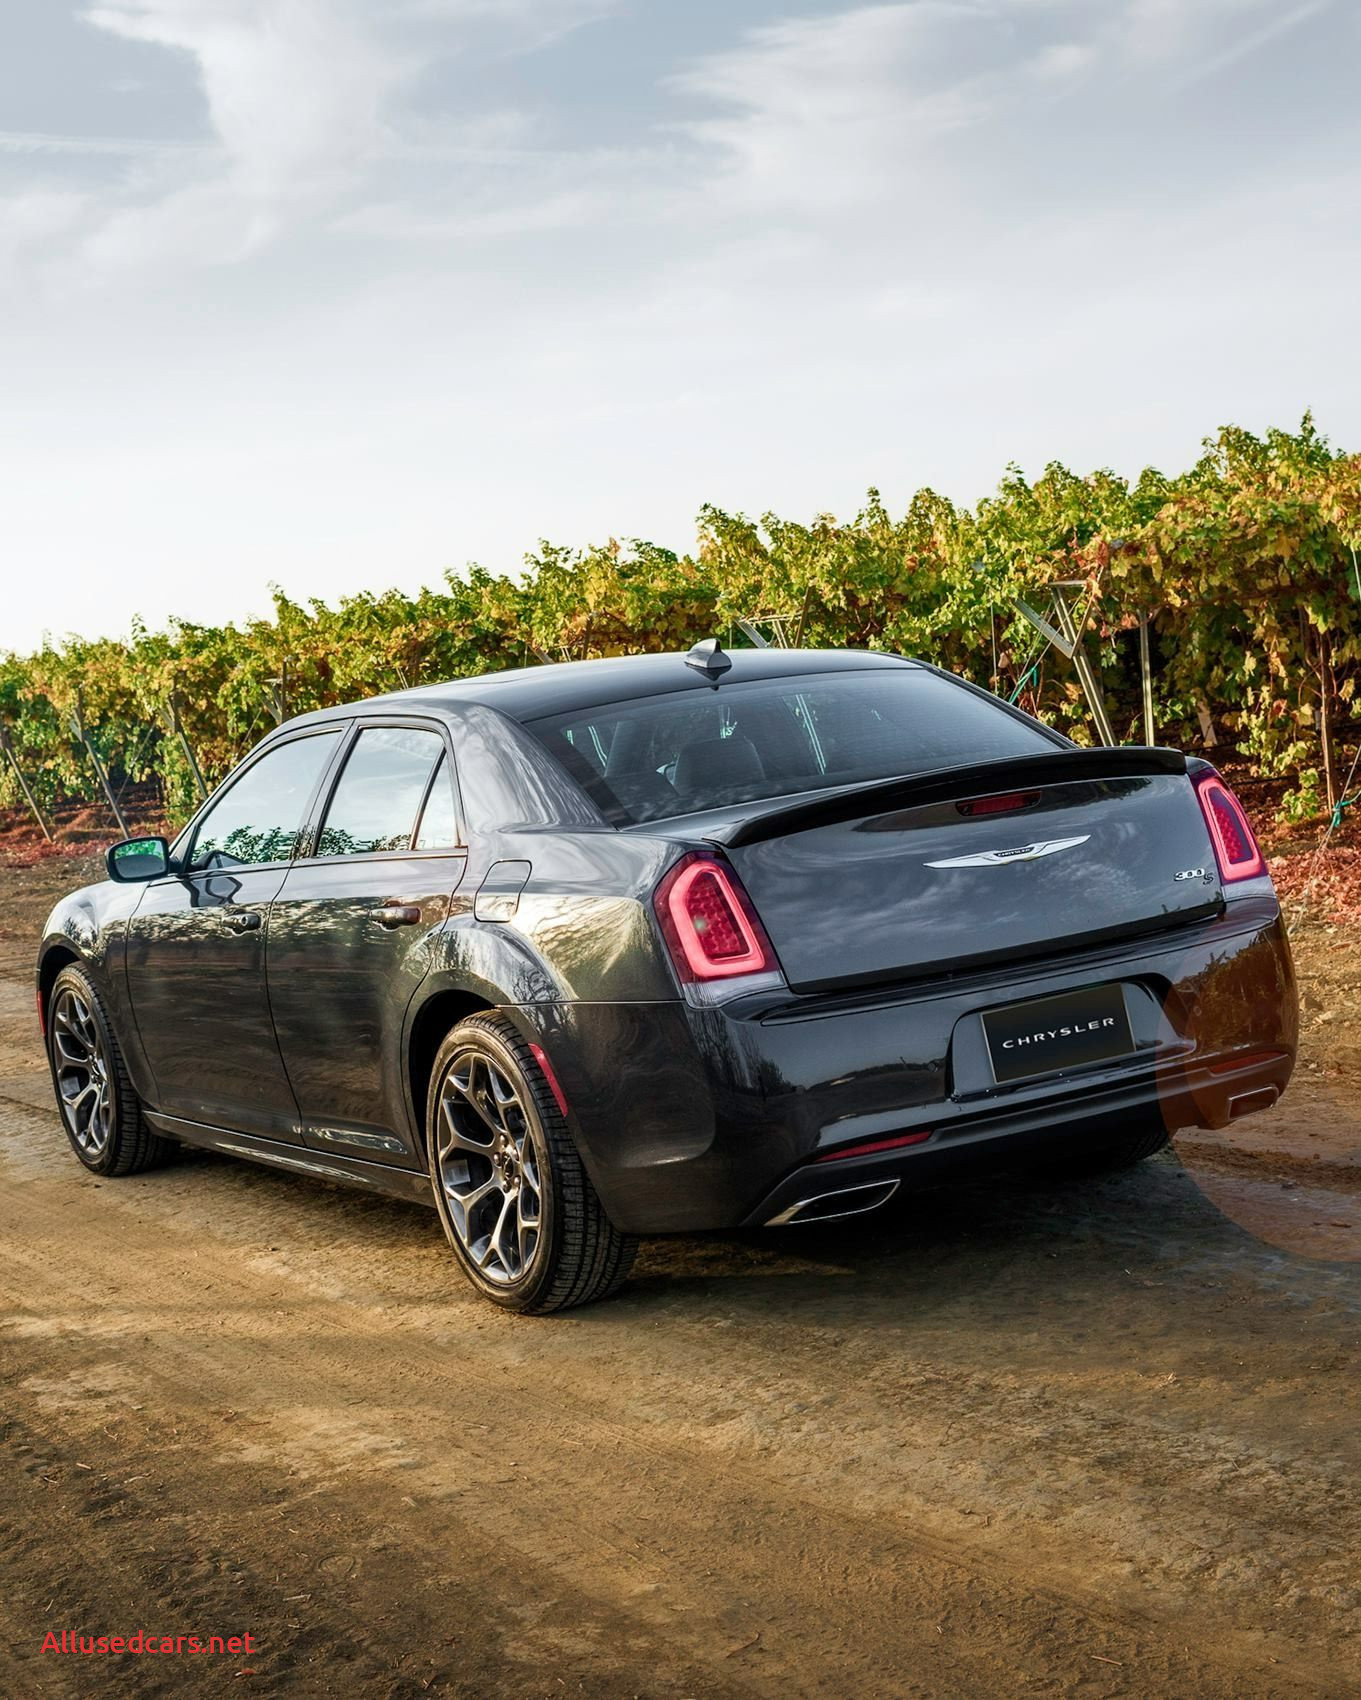 Best Of 2012 Chrysler 300